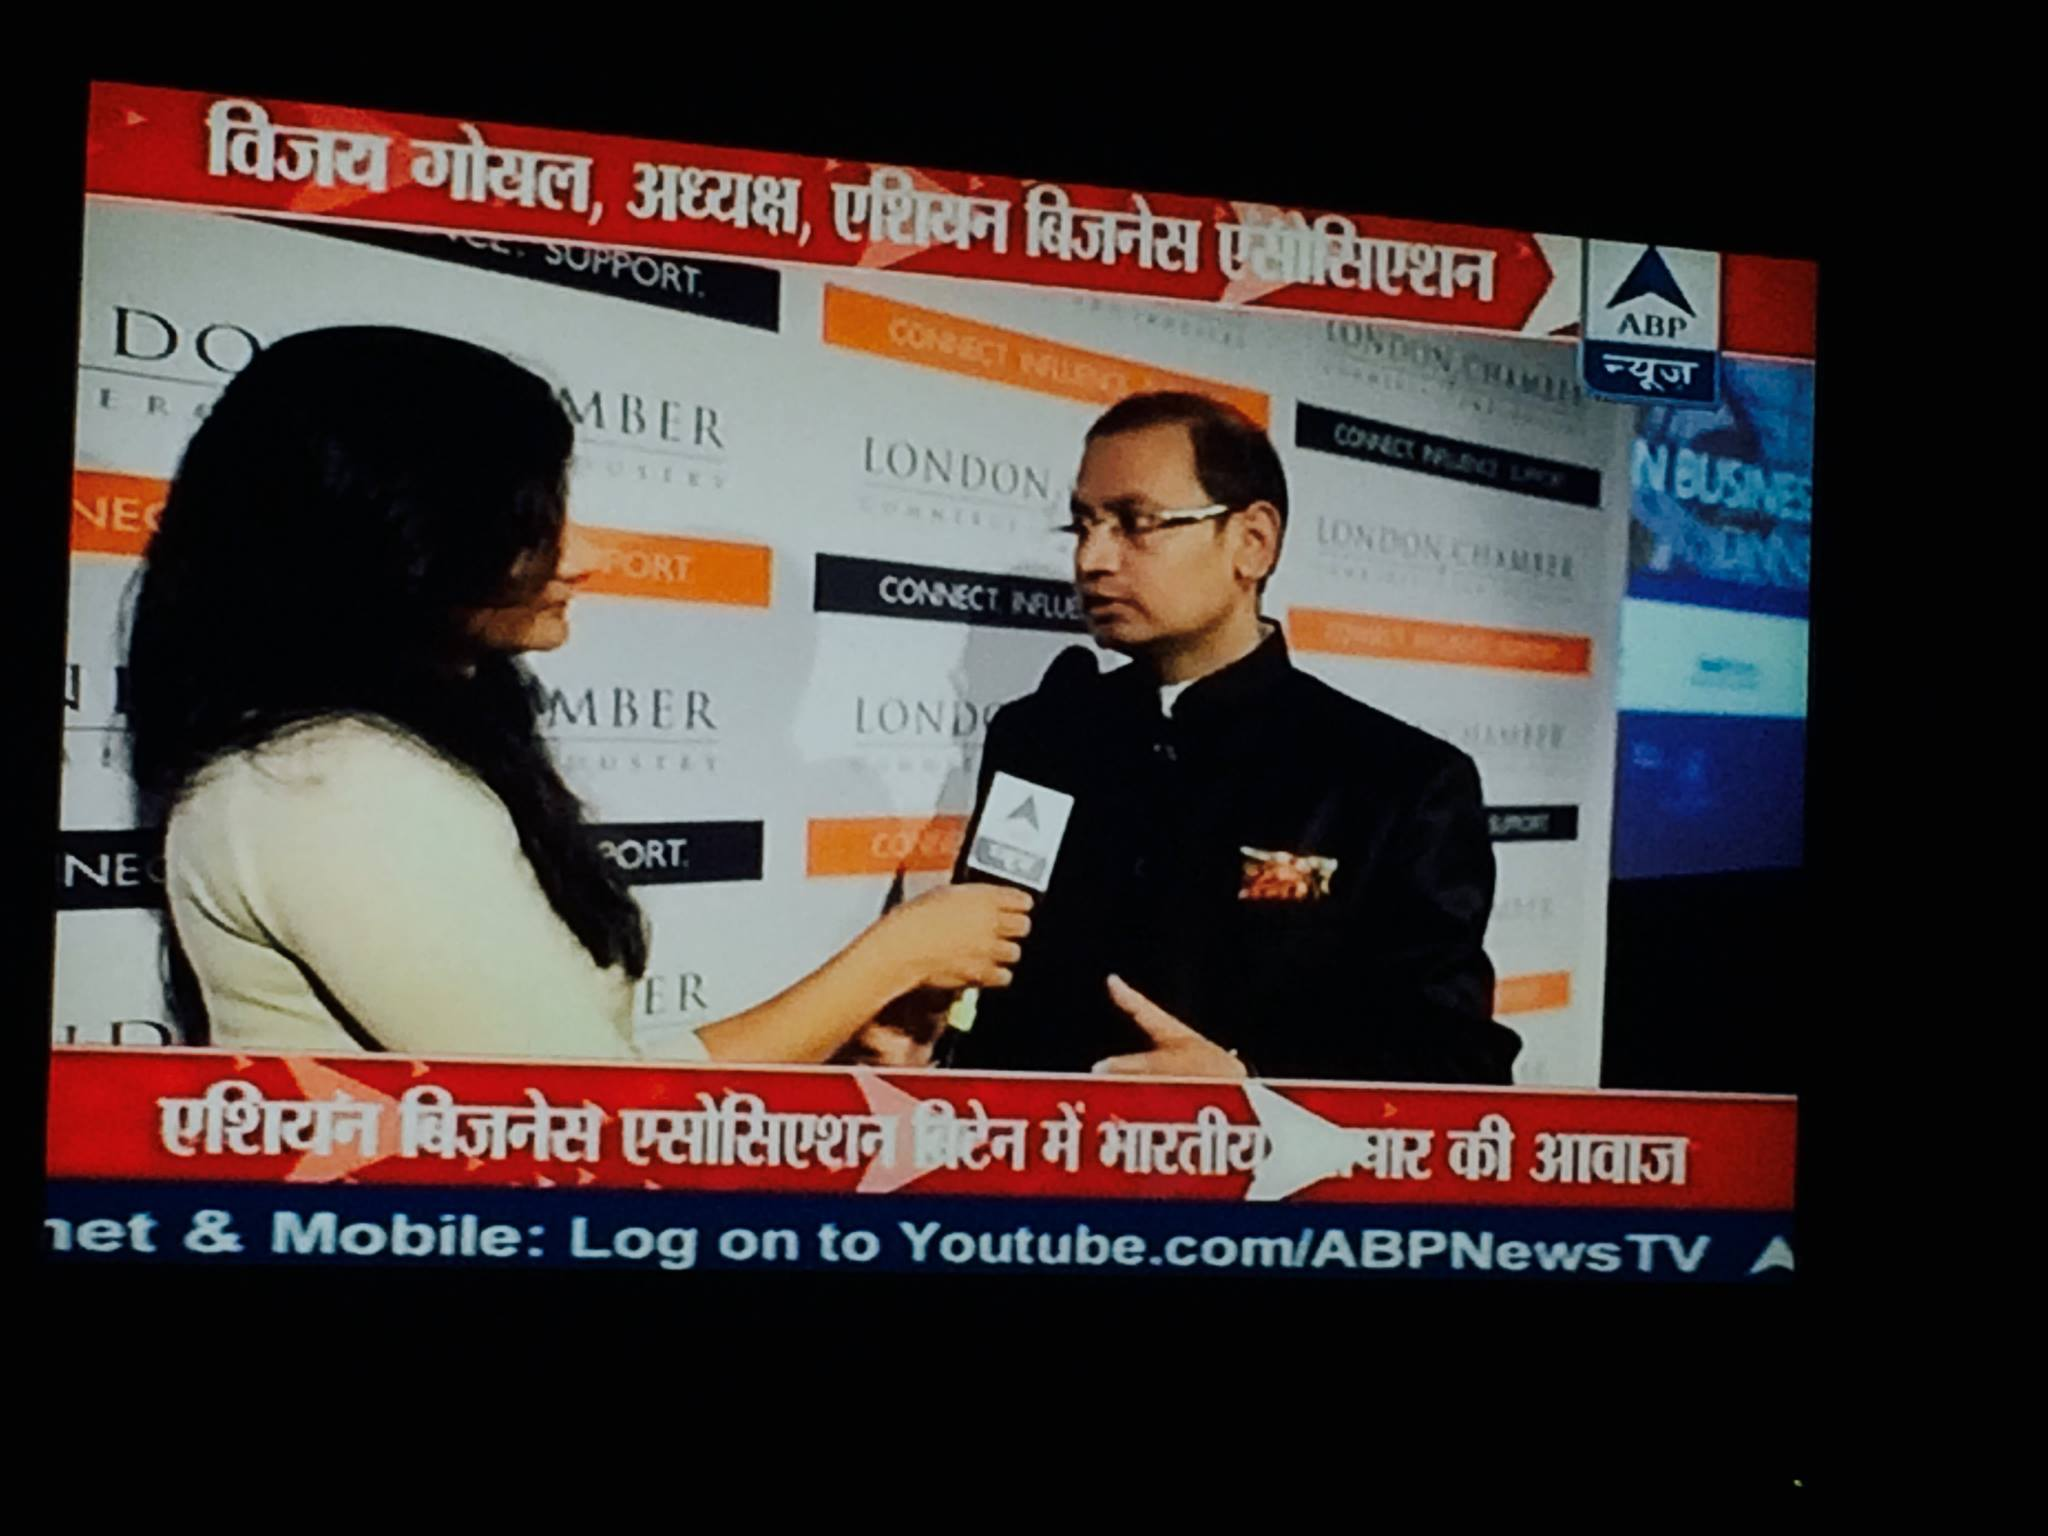 In ABP news